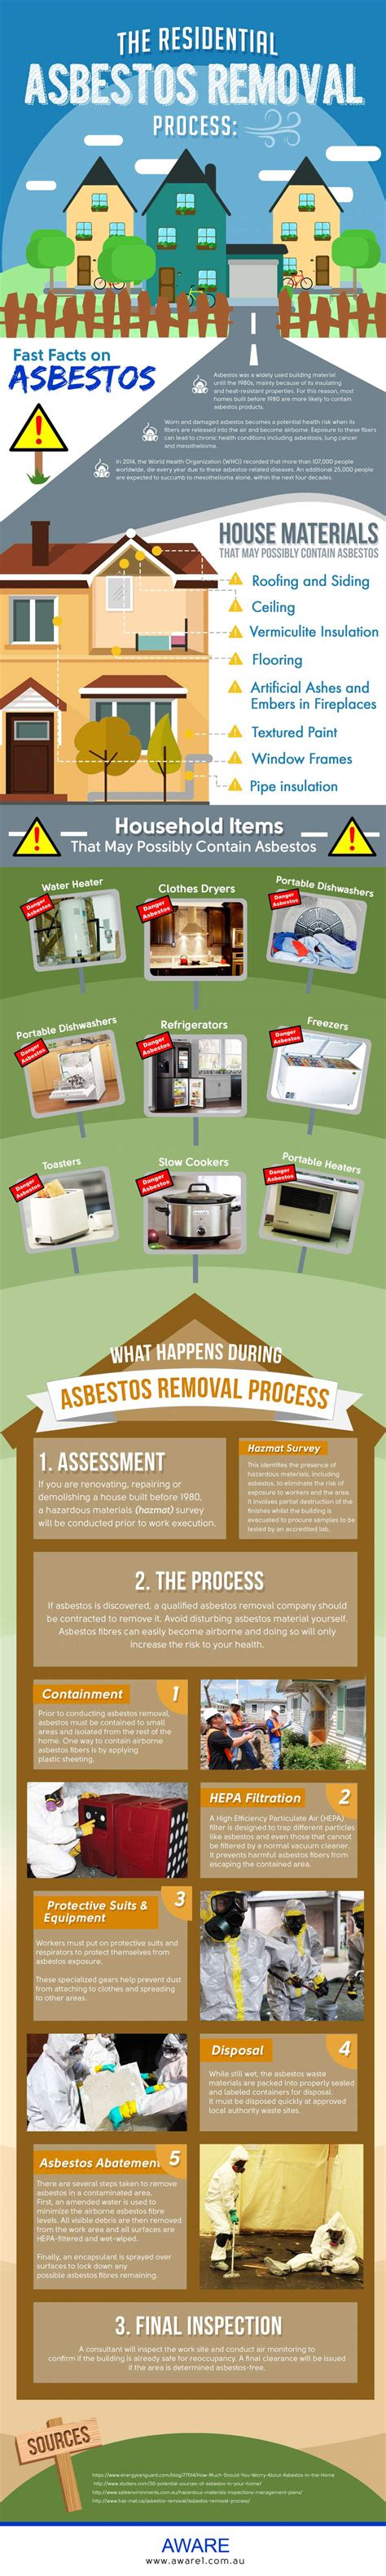 residential asbestos removal process infographic portal